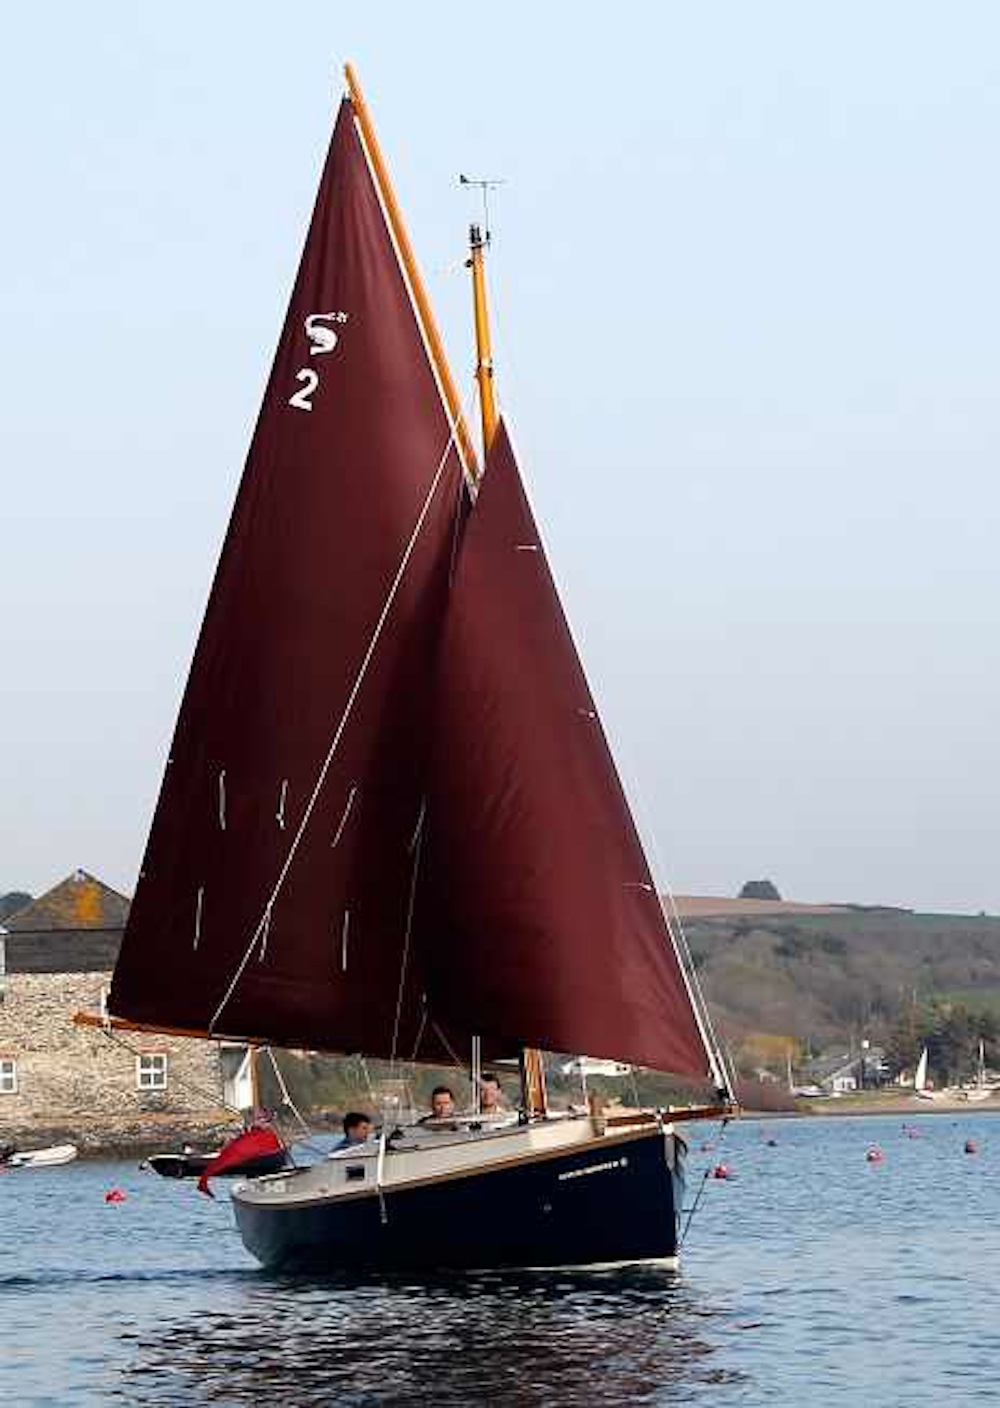 Simple to sail – Cornish Shrimper 21 review